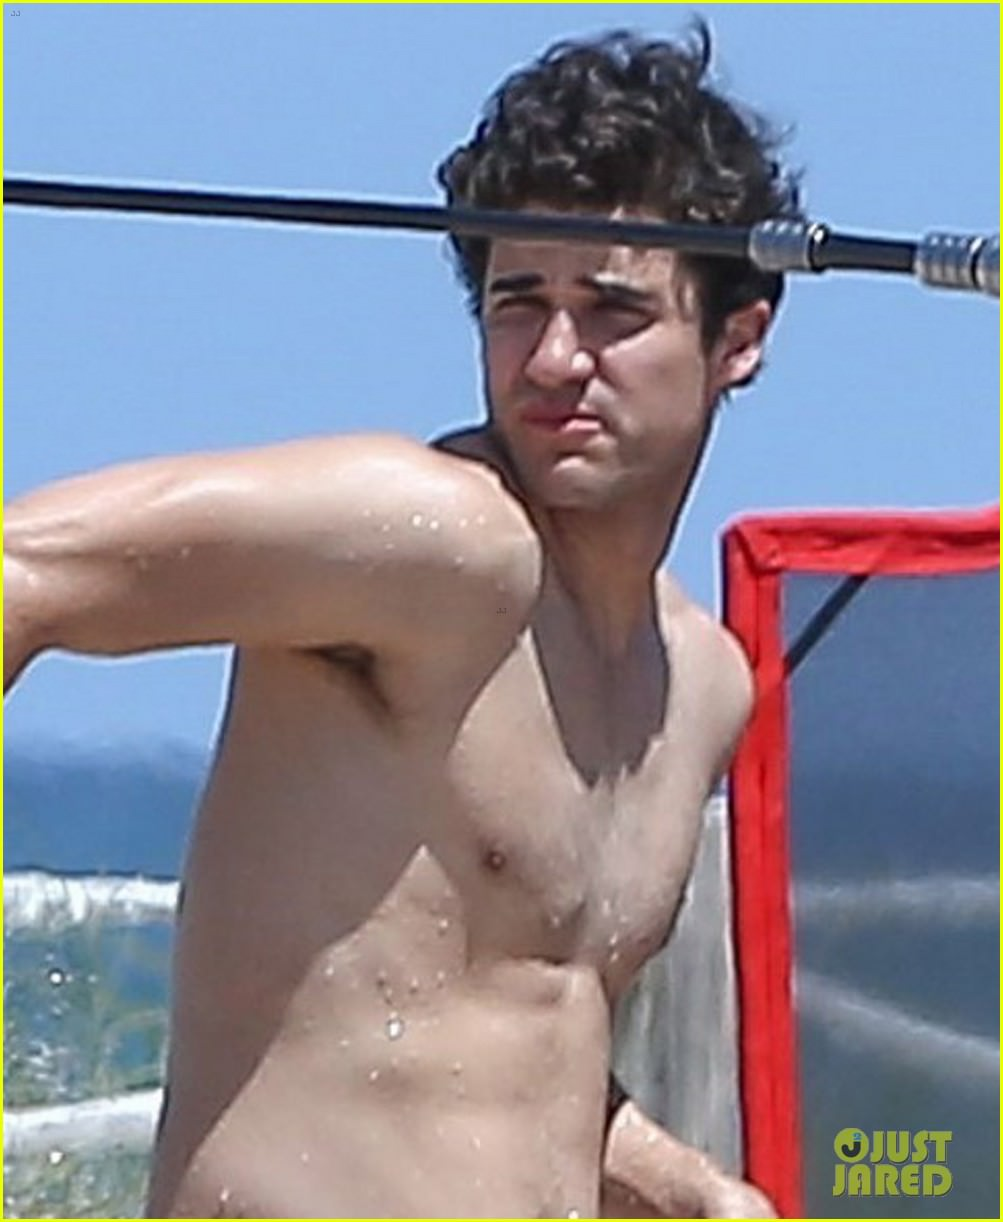 darren-criss-showers-in-a-speedo-on-set-for-versace-09